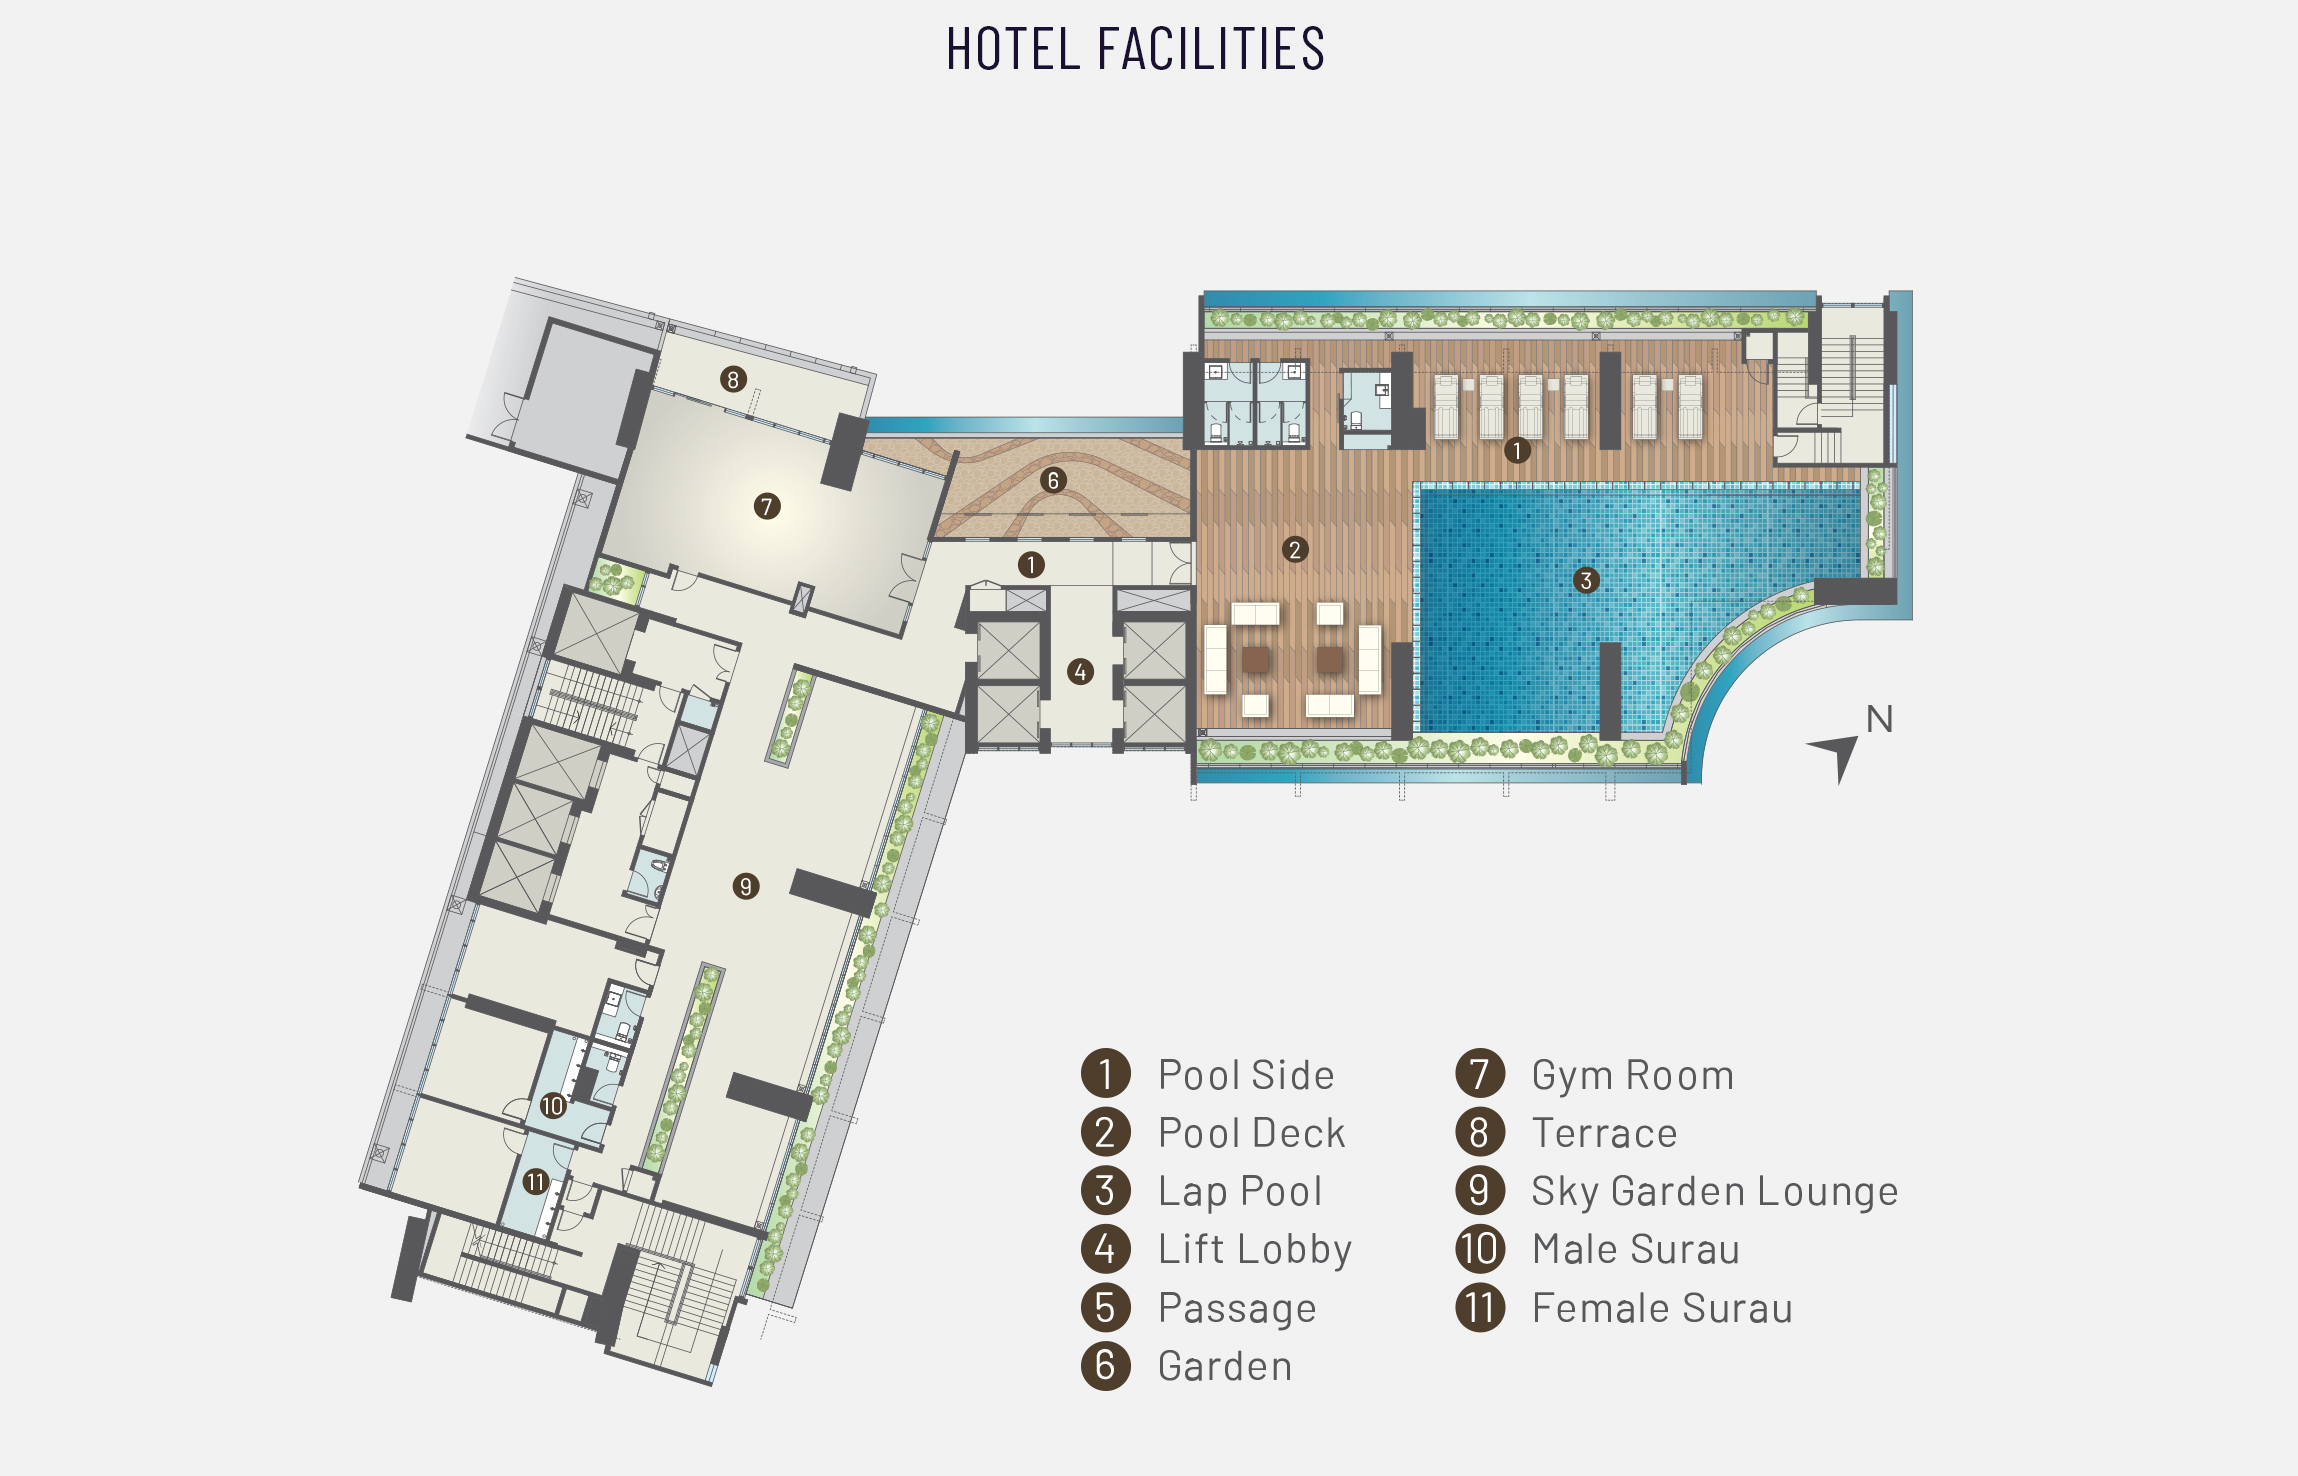 Level 8 plan of Alfa Bangsar showing the hotel facilities including pool side, pool deck, lap pool, lift lobby, passage, garden, gym room, terrace, Sky Garden Lounge, male surau, and female surau.